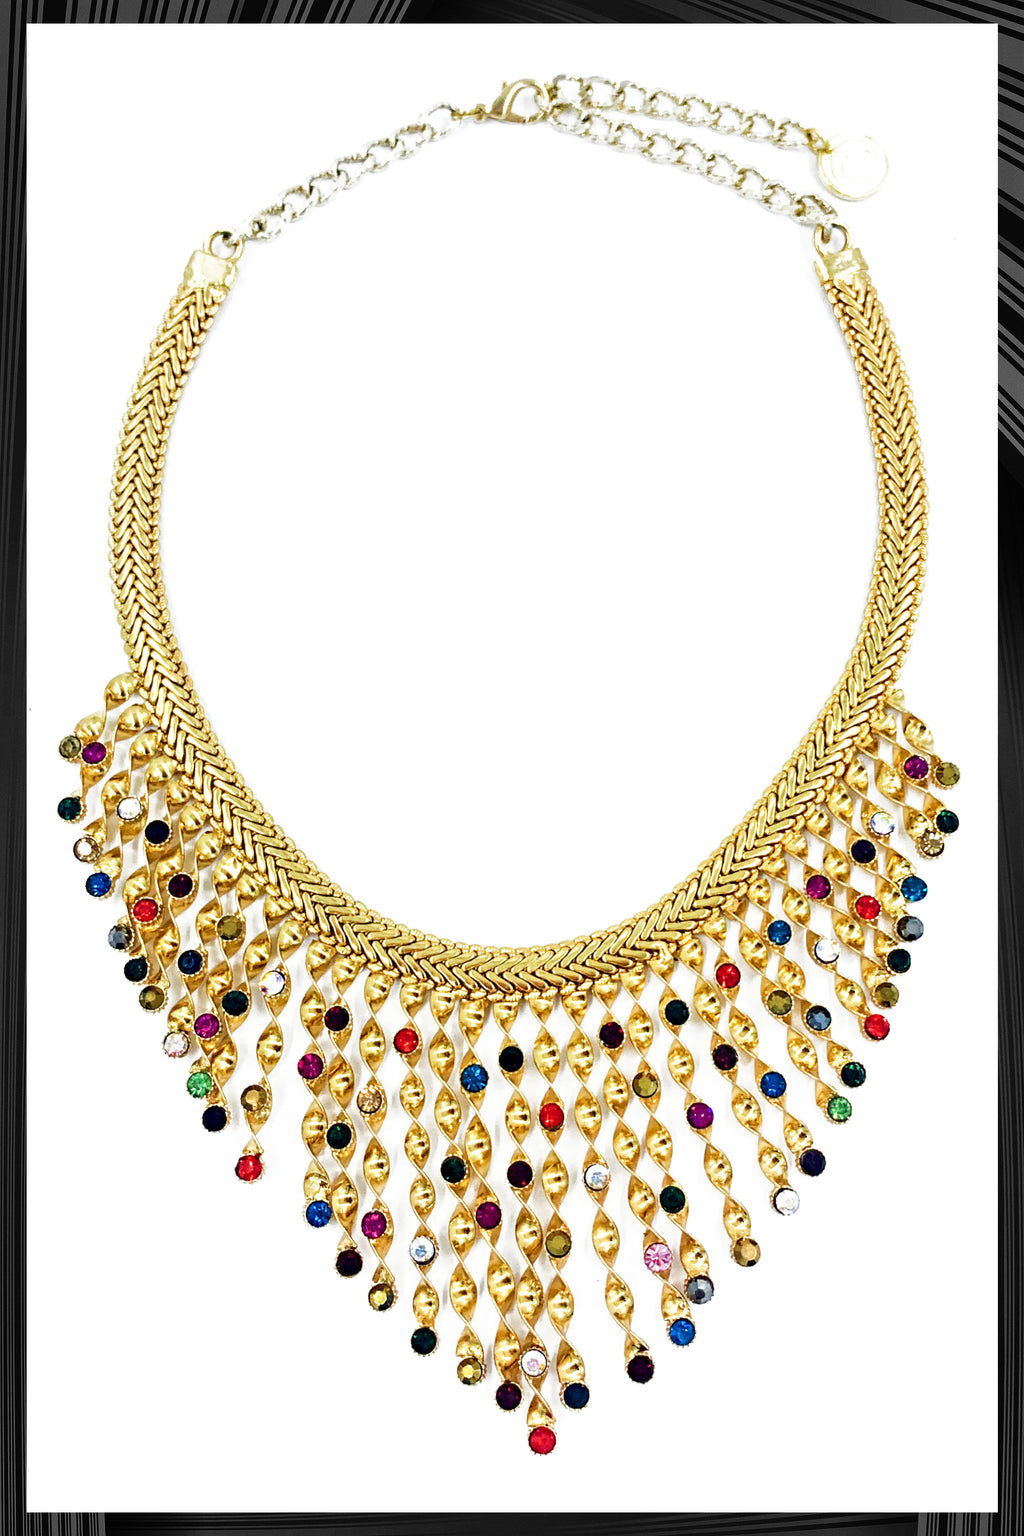 Amoli Necklace